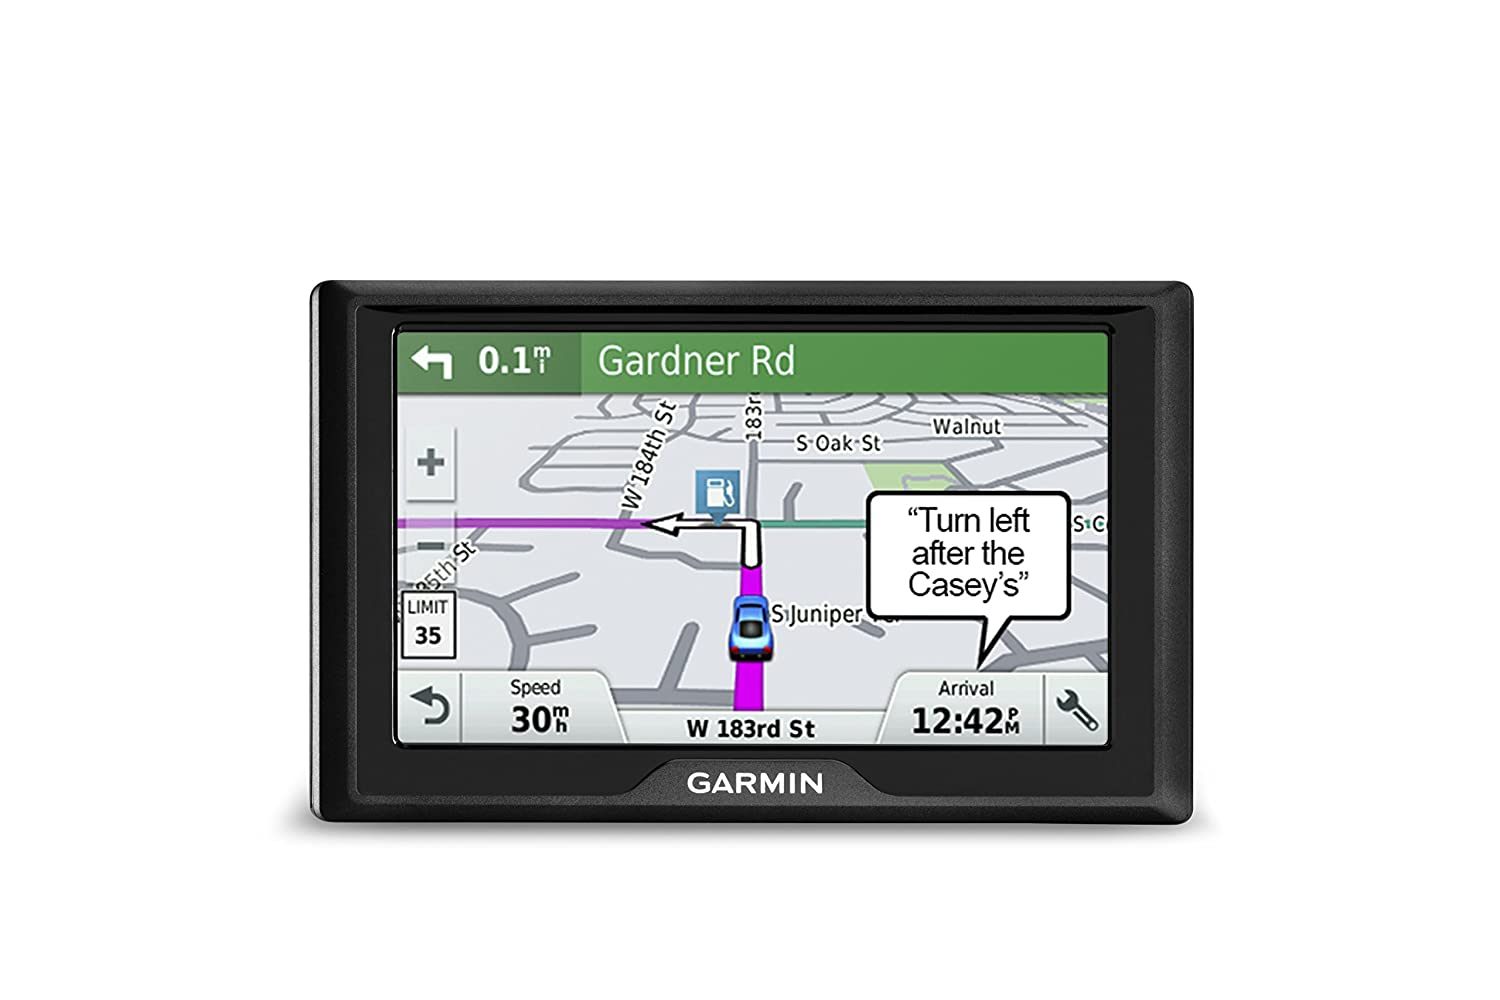 Garmin Drive 50 USA + CAN LM GPS Navigator System with Lifetime Maps, on garmin map updater not working, garmin gps updates, garmin map product key, garmin software updates, garmin nuvi updates, garmin lifetime map upgrade, my garmin updates, garmin map 2014.20,